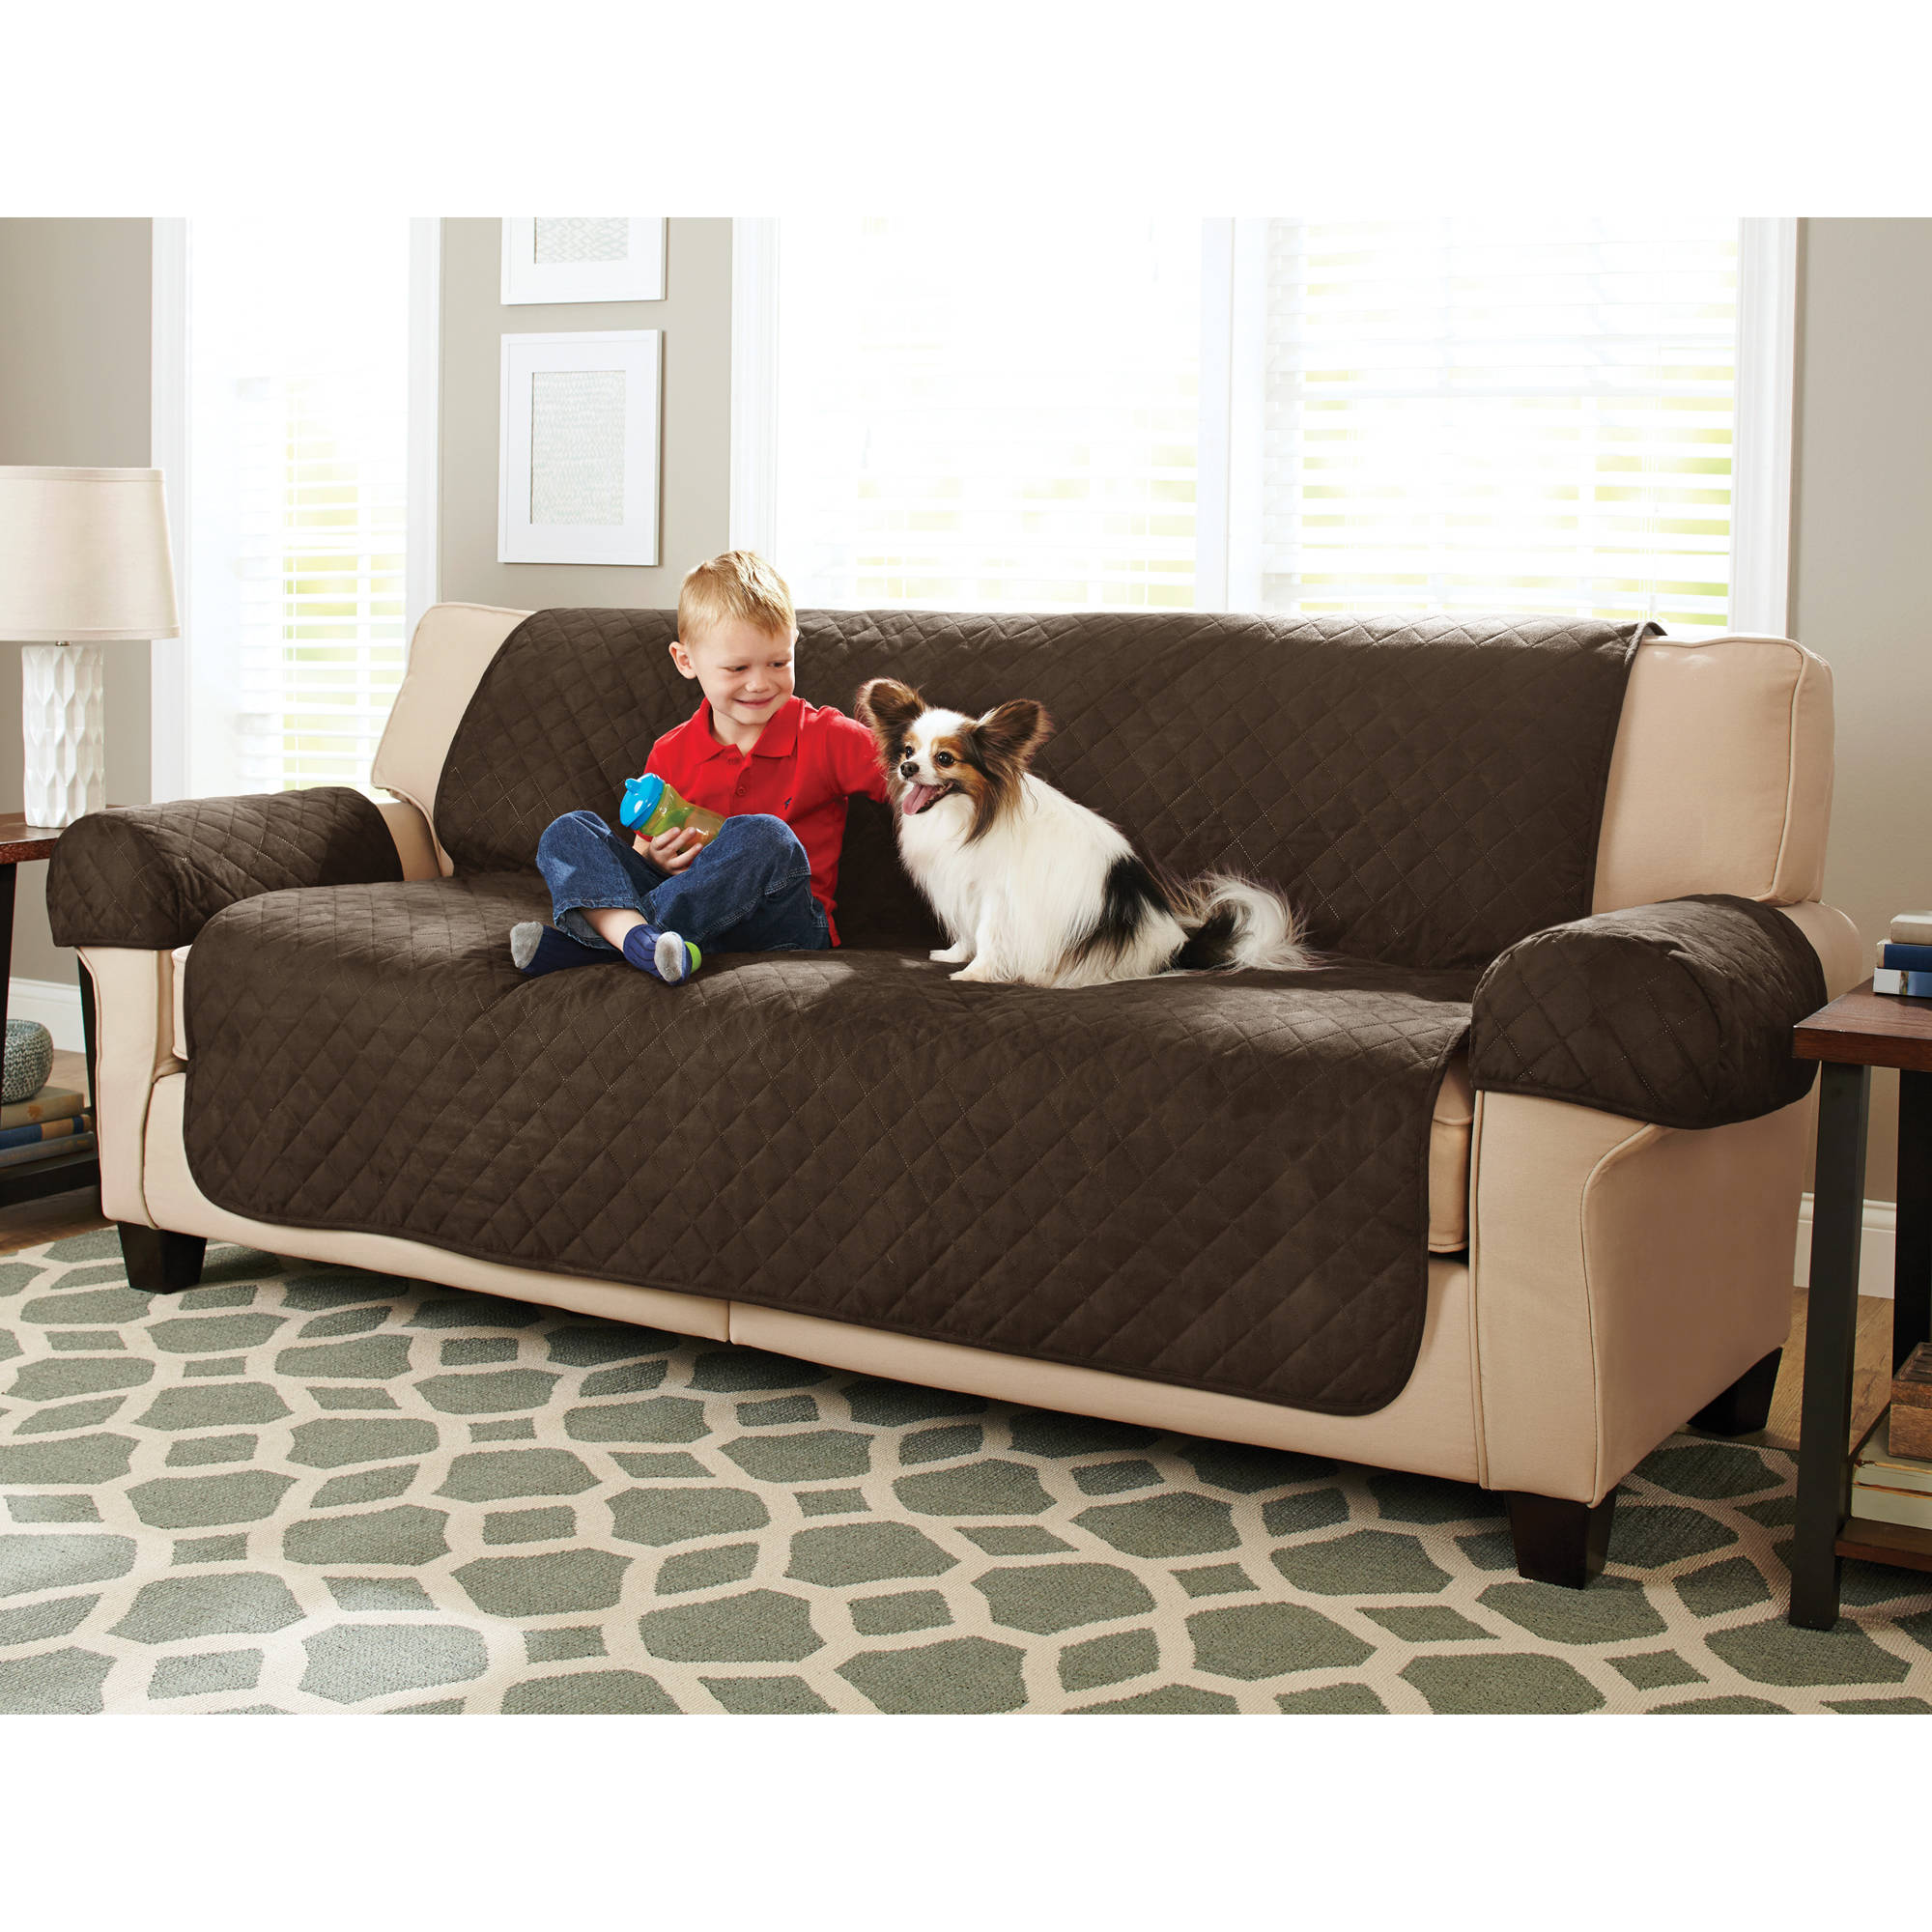 Better Homes and Gardens Waterproof Non-Slip Sofa Furniture Pet Cover -  Walmart.com 2a18b49e41